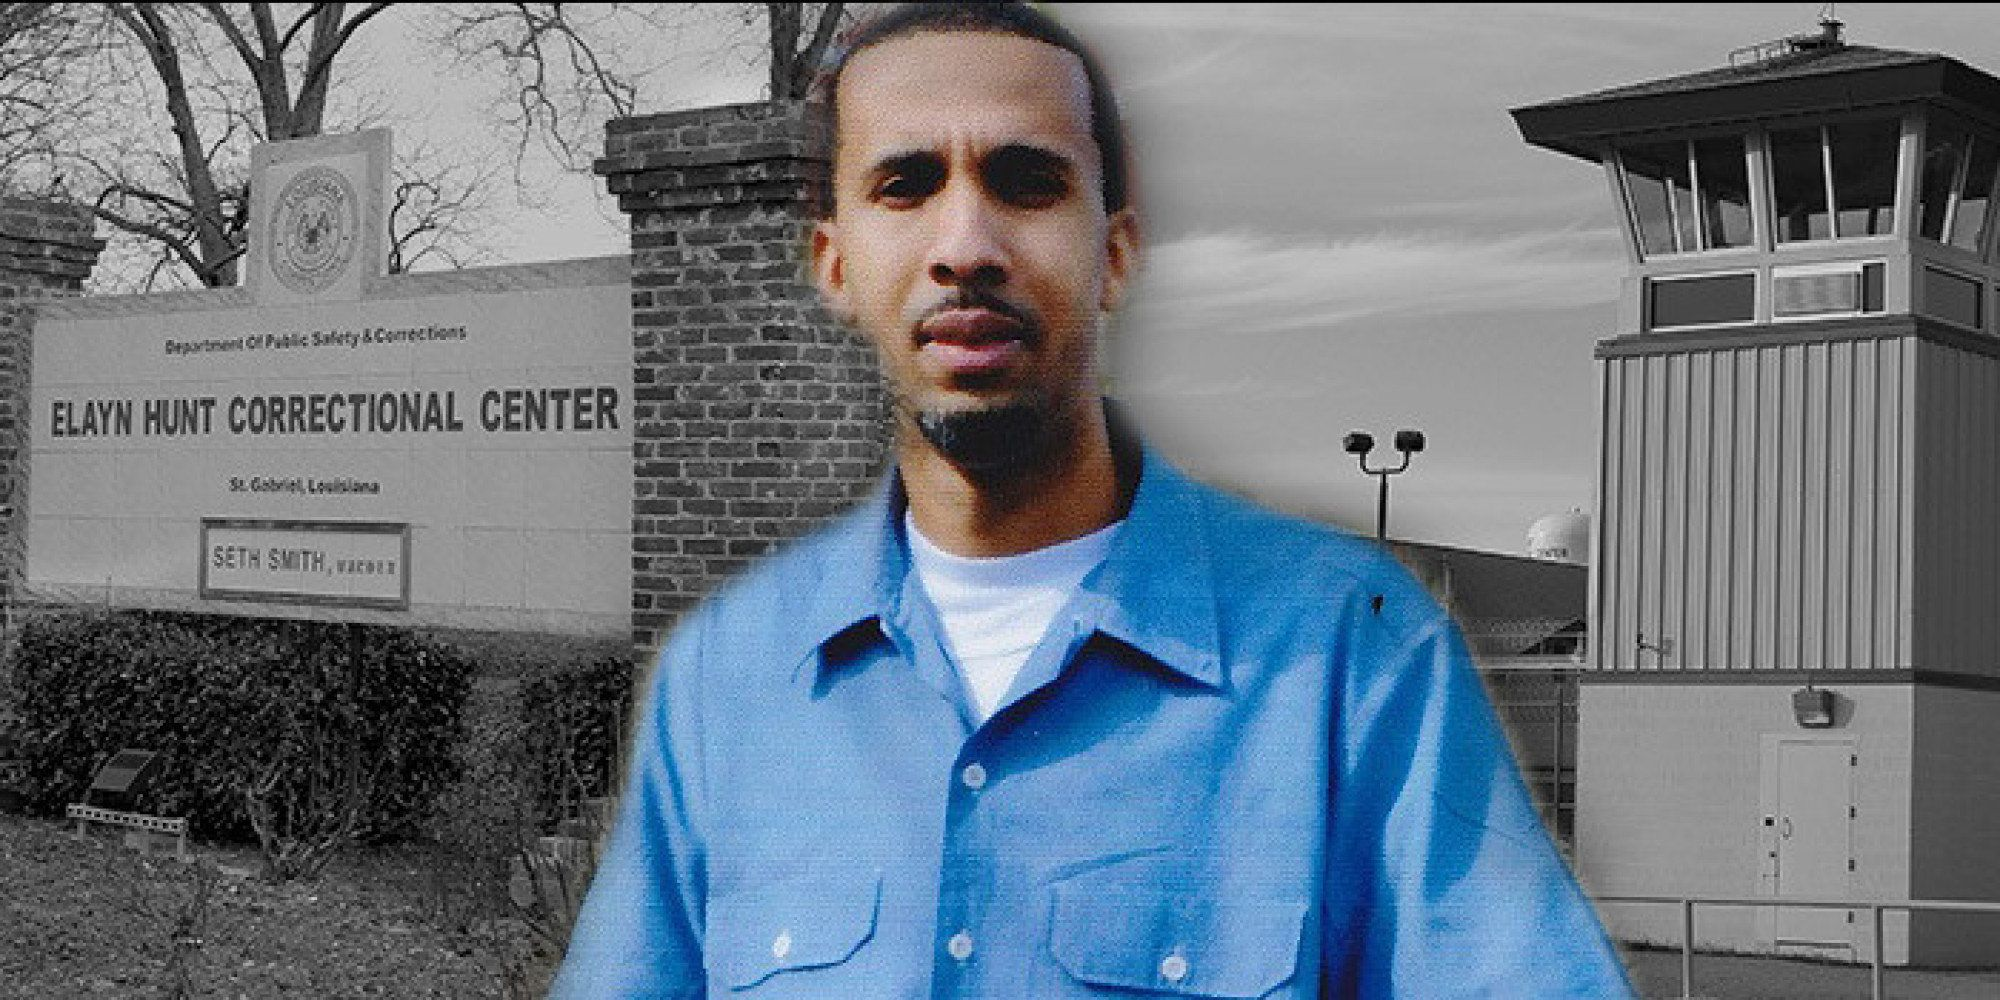 A petition in support of clemency for the hip-hop artist is garnering support from recording artists, journalists and reformists.